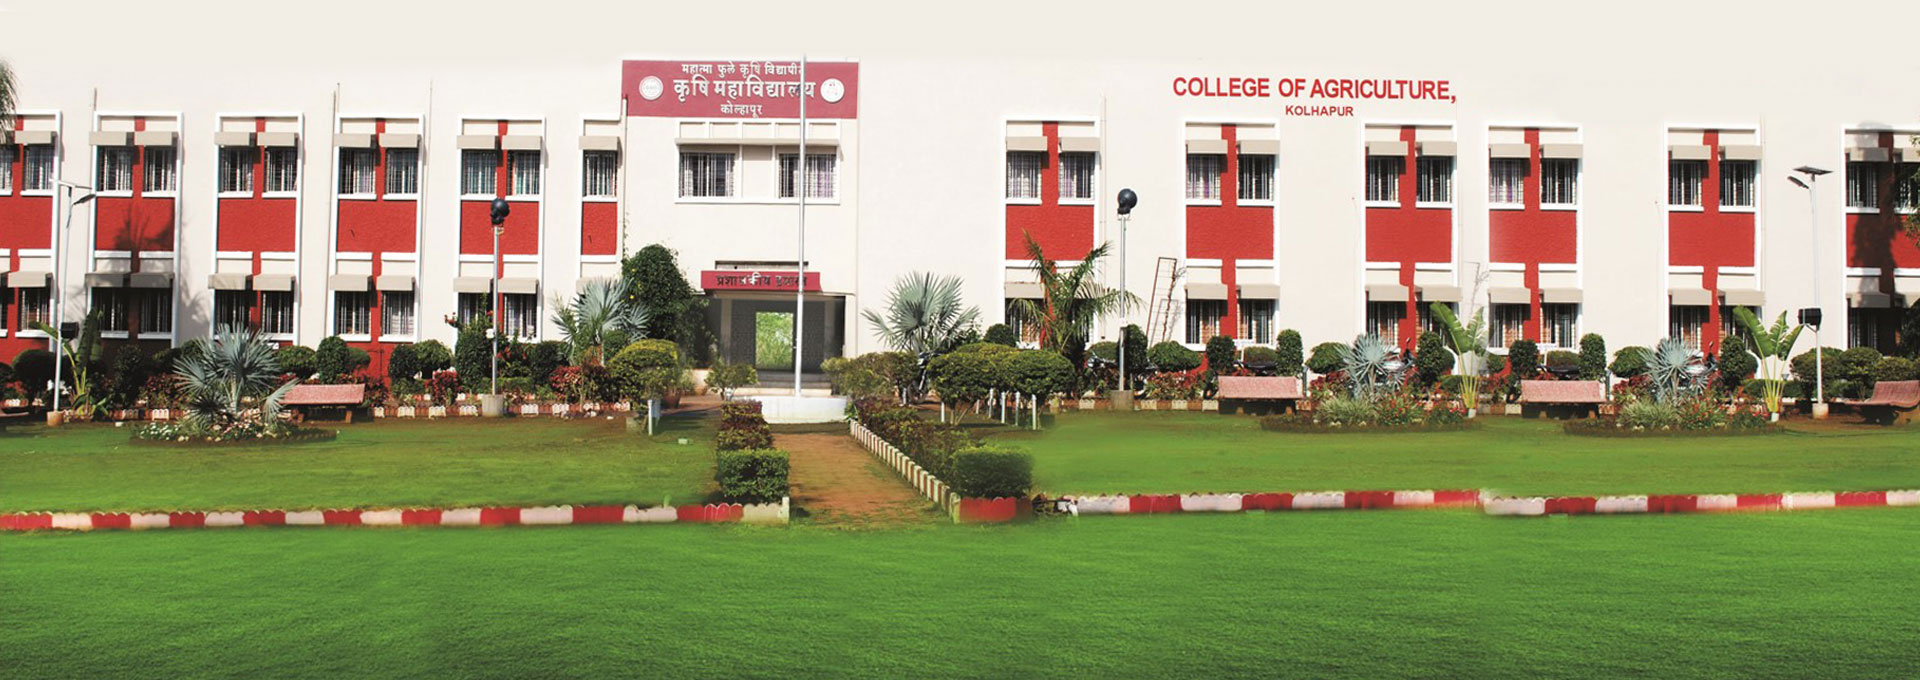 College of Agriculture, Kolhapur